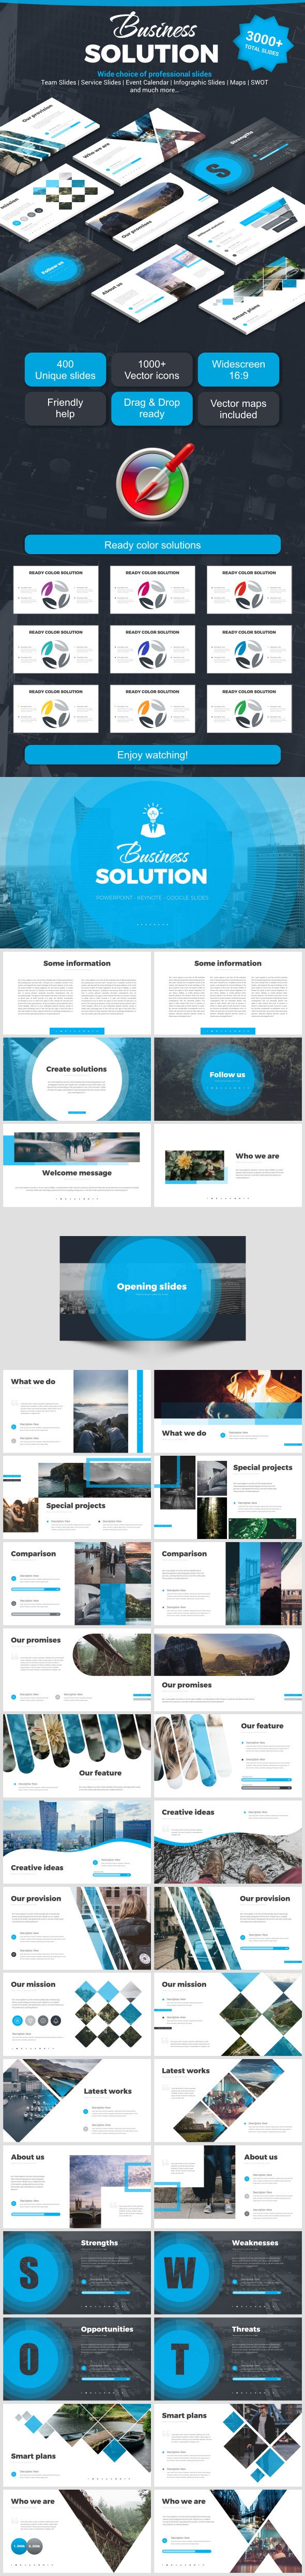 Business Solution - Business Keynote Templates